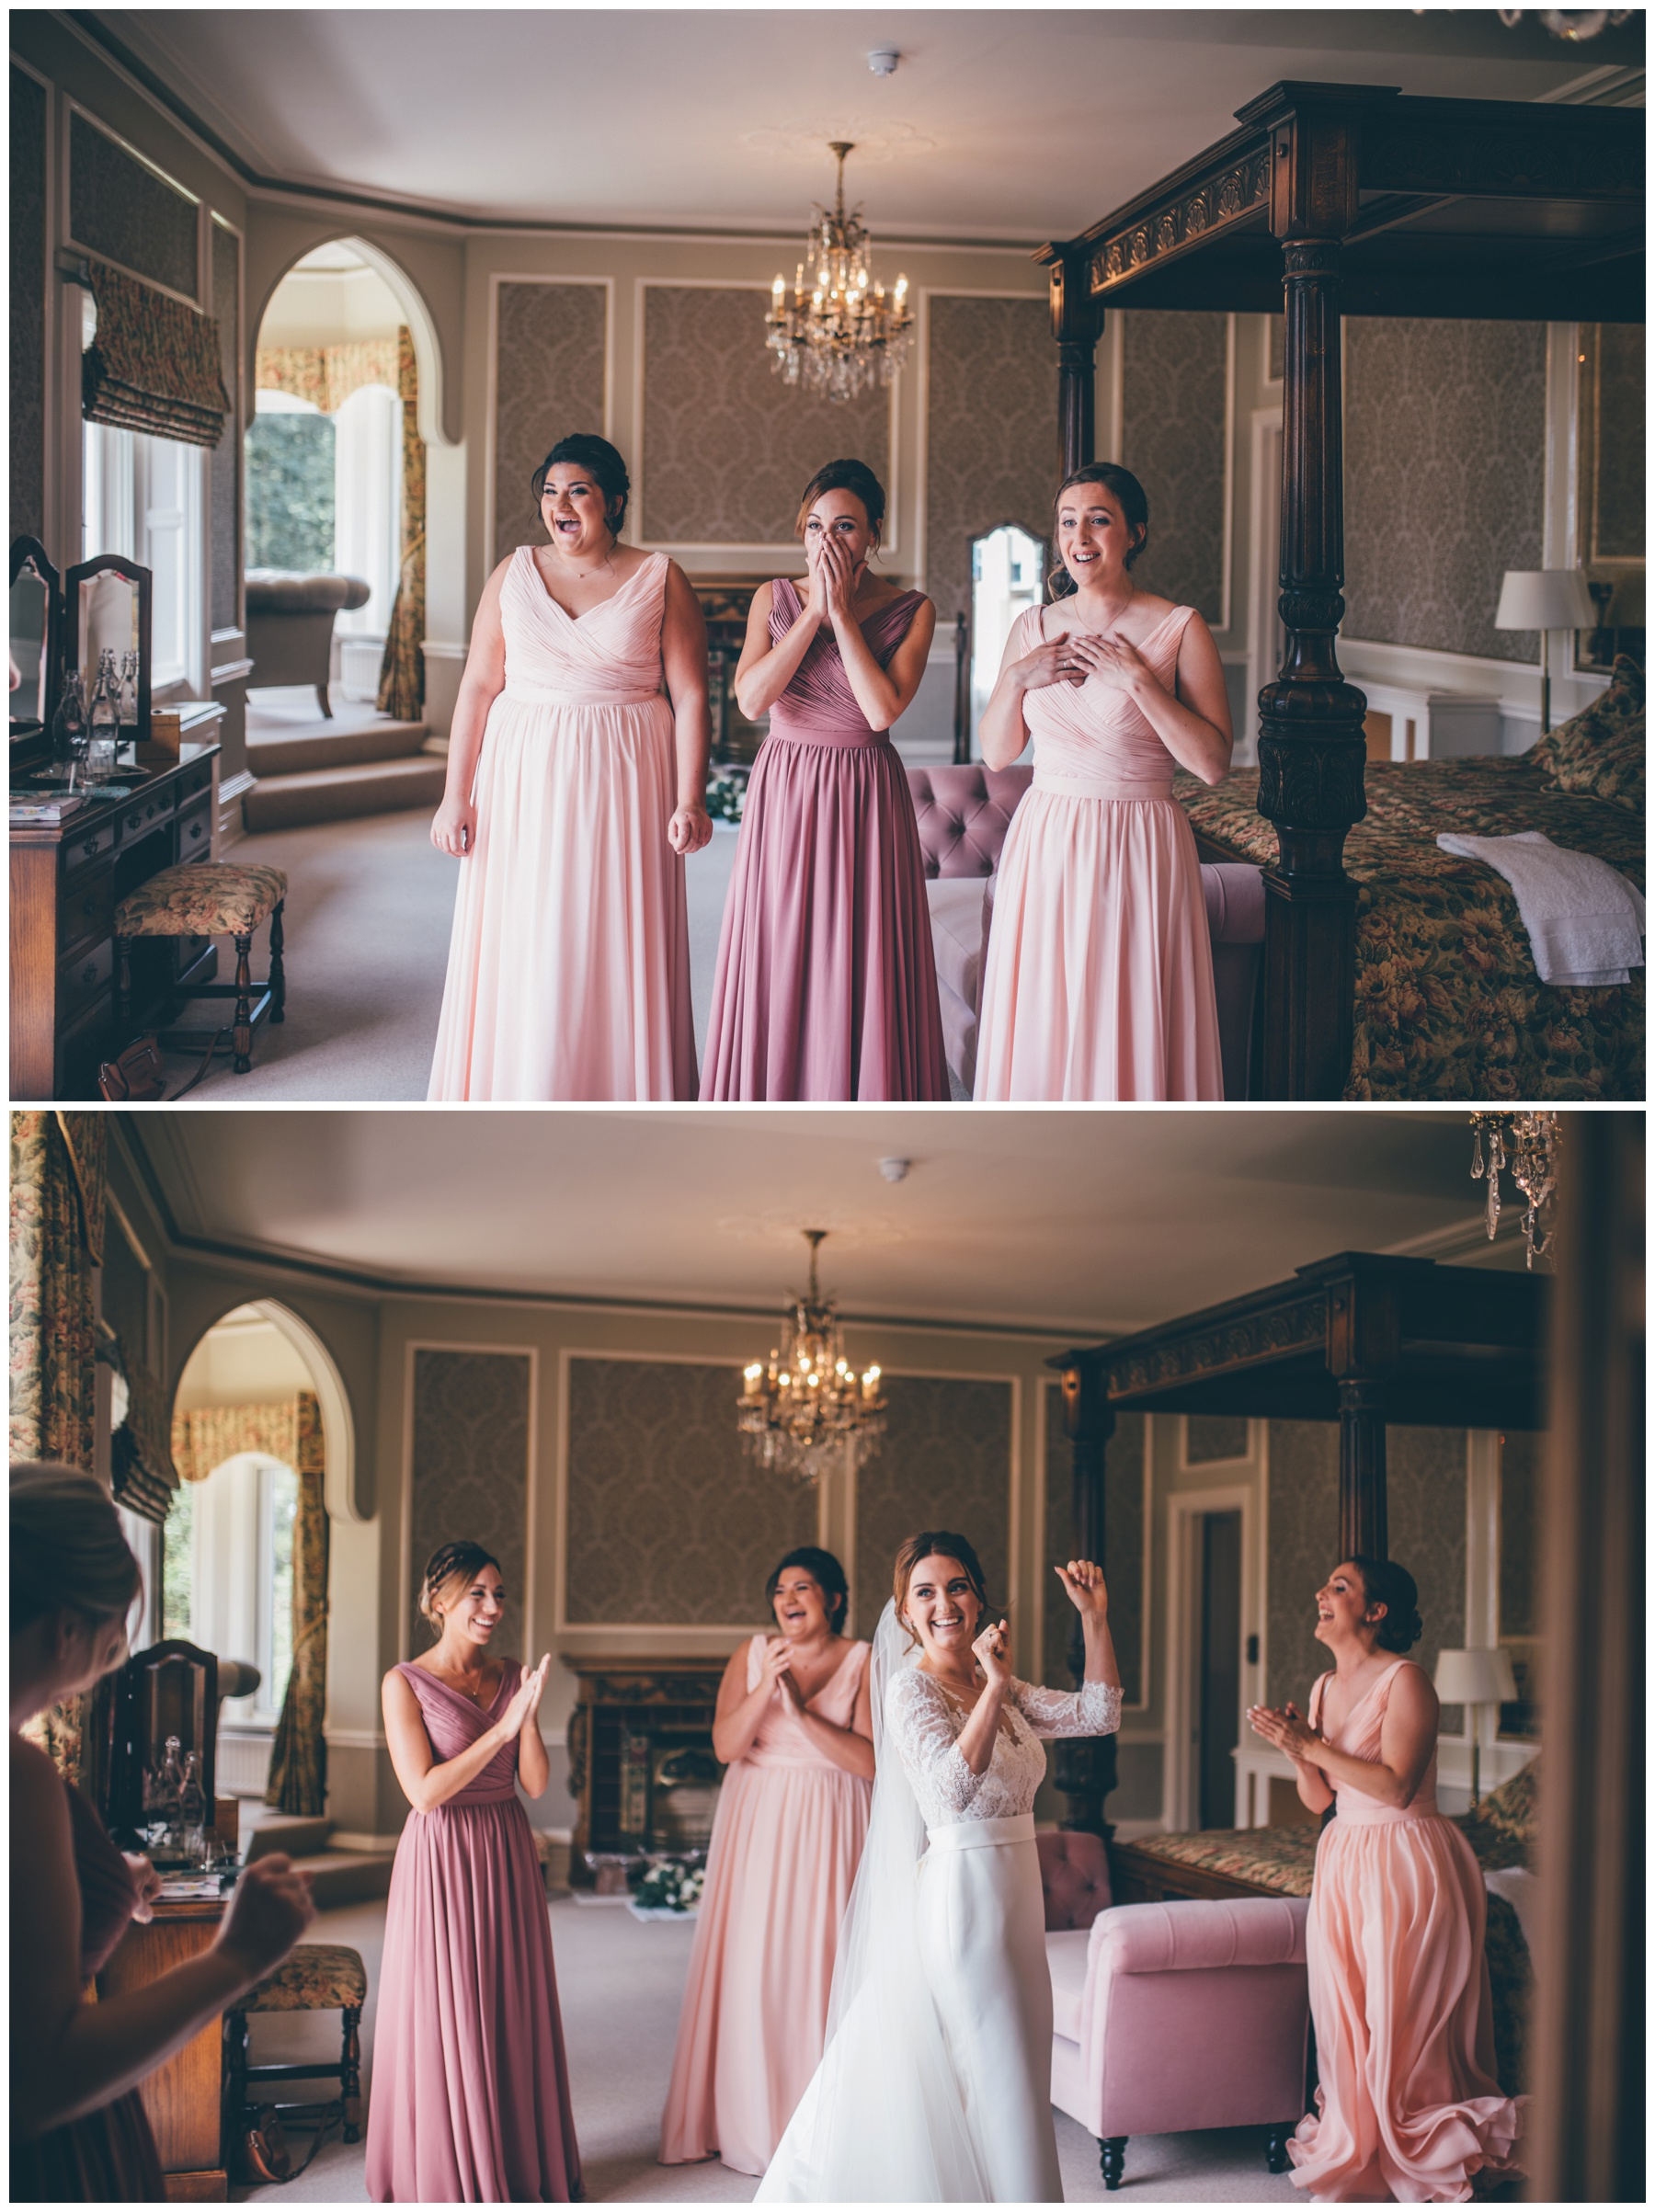 The bridesmaids see their friend for the first time as a bride at Tilstone House.